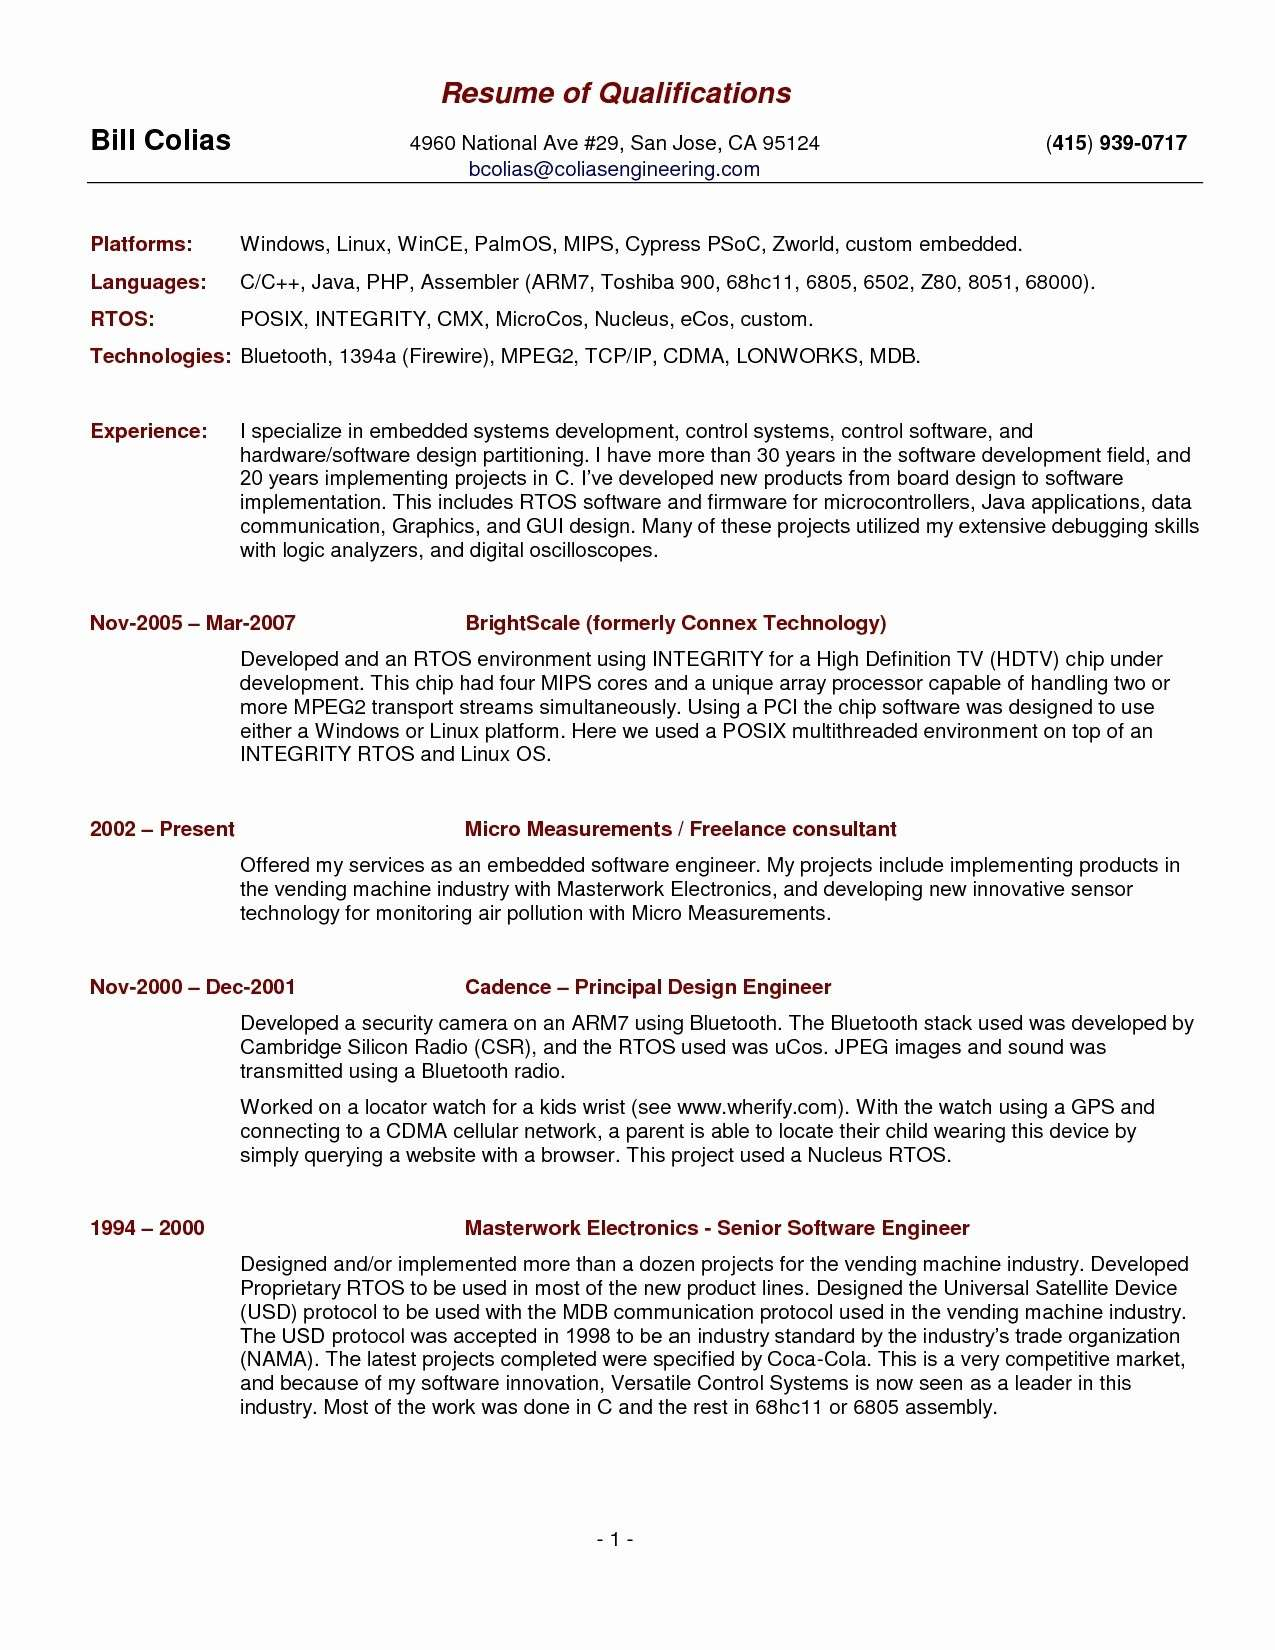 A Professional Resume - the 23 Greatest Pics What Does A Professional Resume Look Like